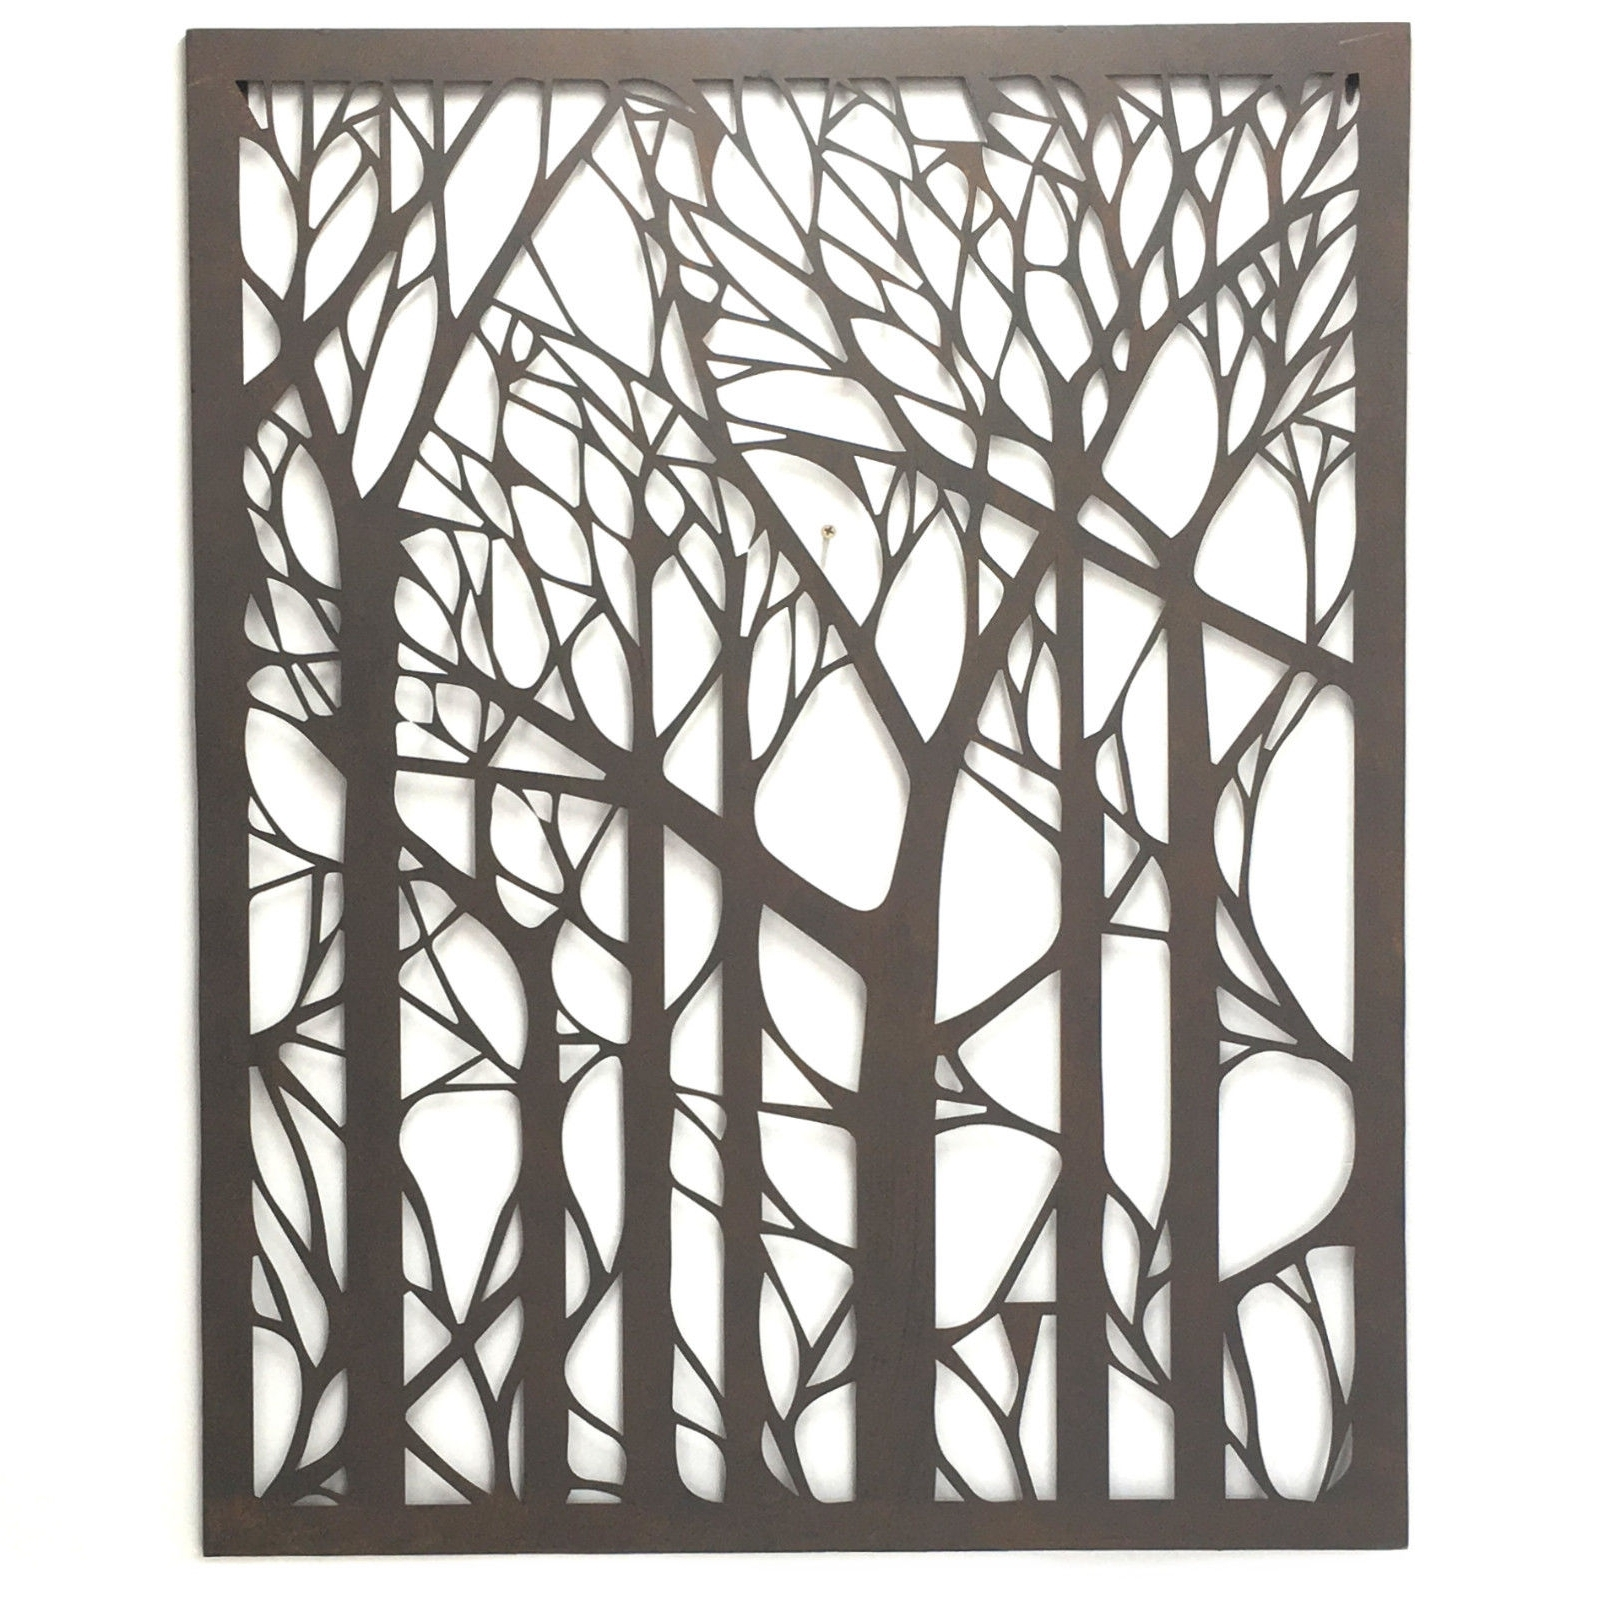 Wall Art Designs: Outdoor Wall Art Metal Tree Metal Wall Art In 2018 Metal Wall Art Trees And Branches (View 3 of 15)